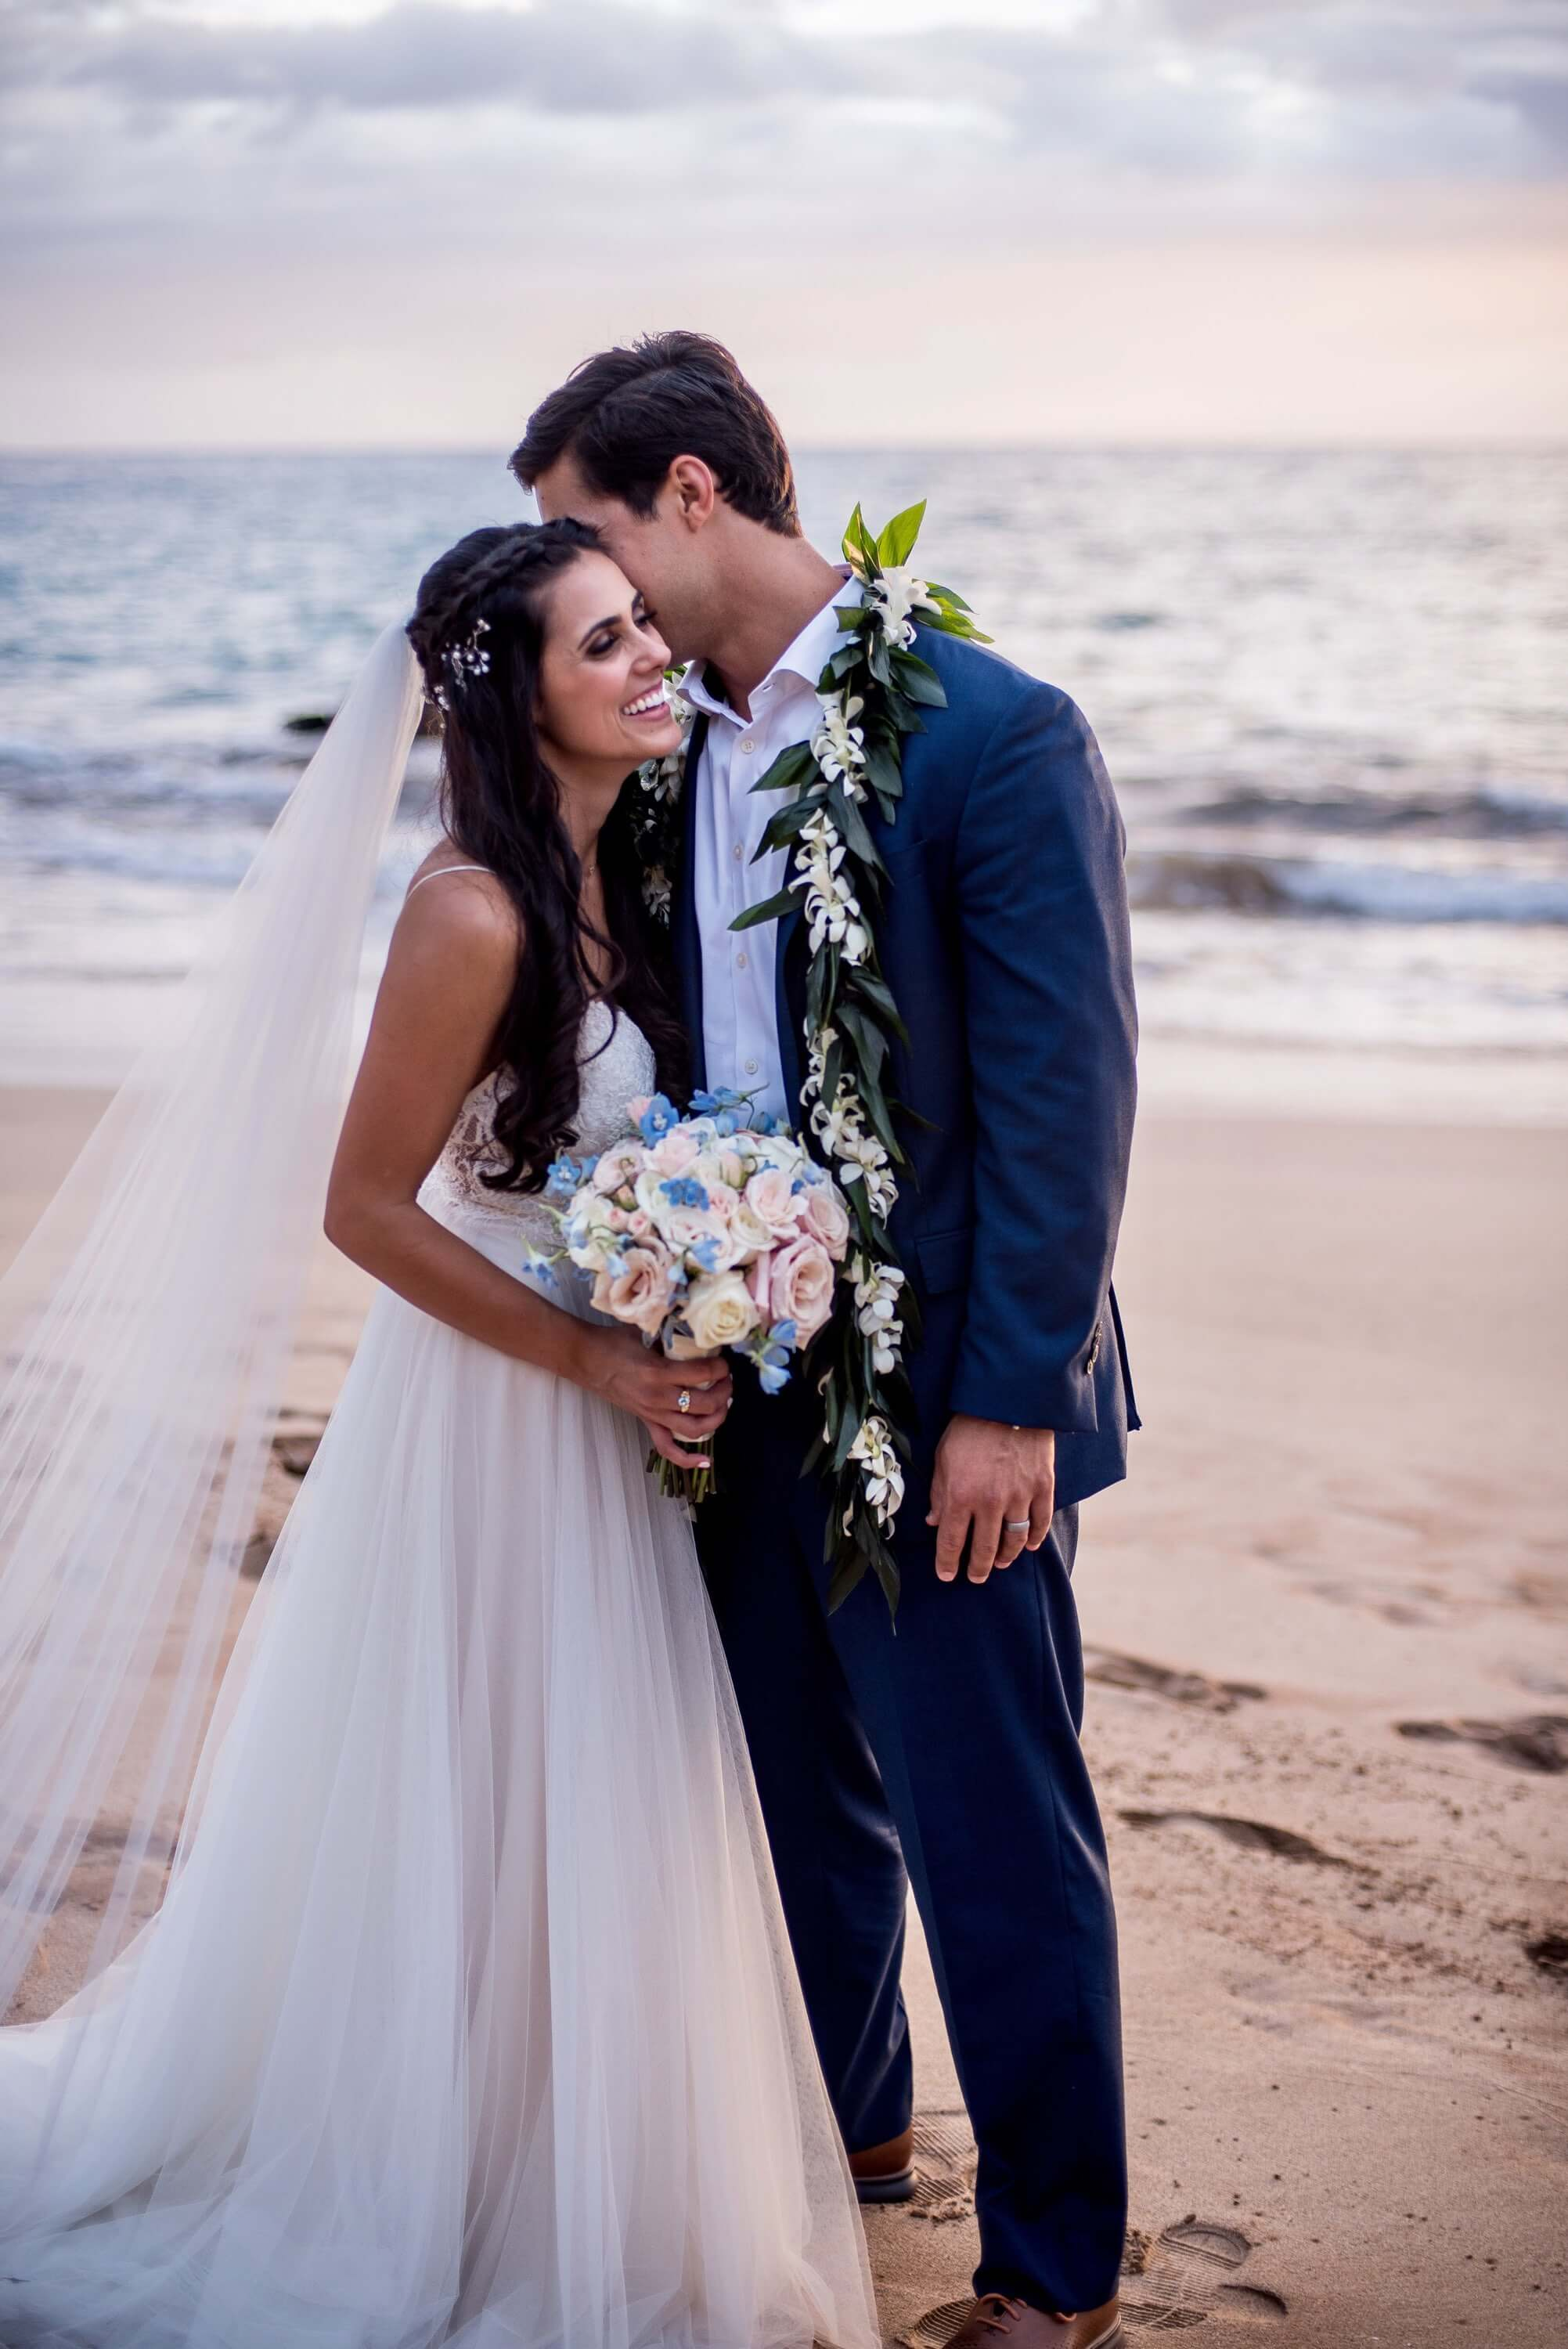 Aloha Maui Beach Weddings - Mr. and Mrs. Mohamad getting alone time on the beach Couple 2018